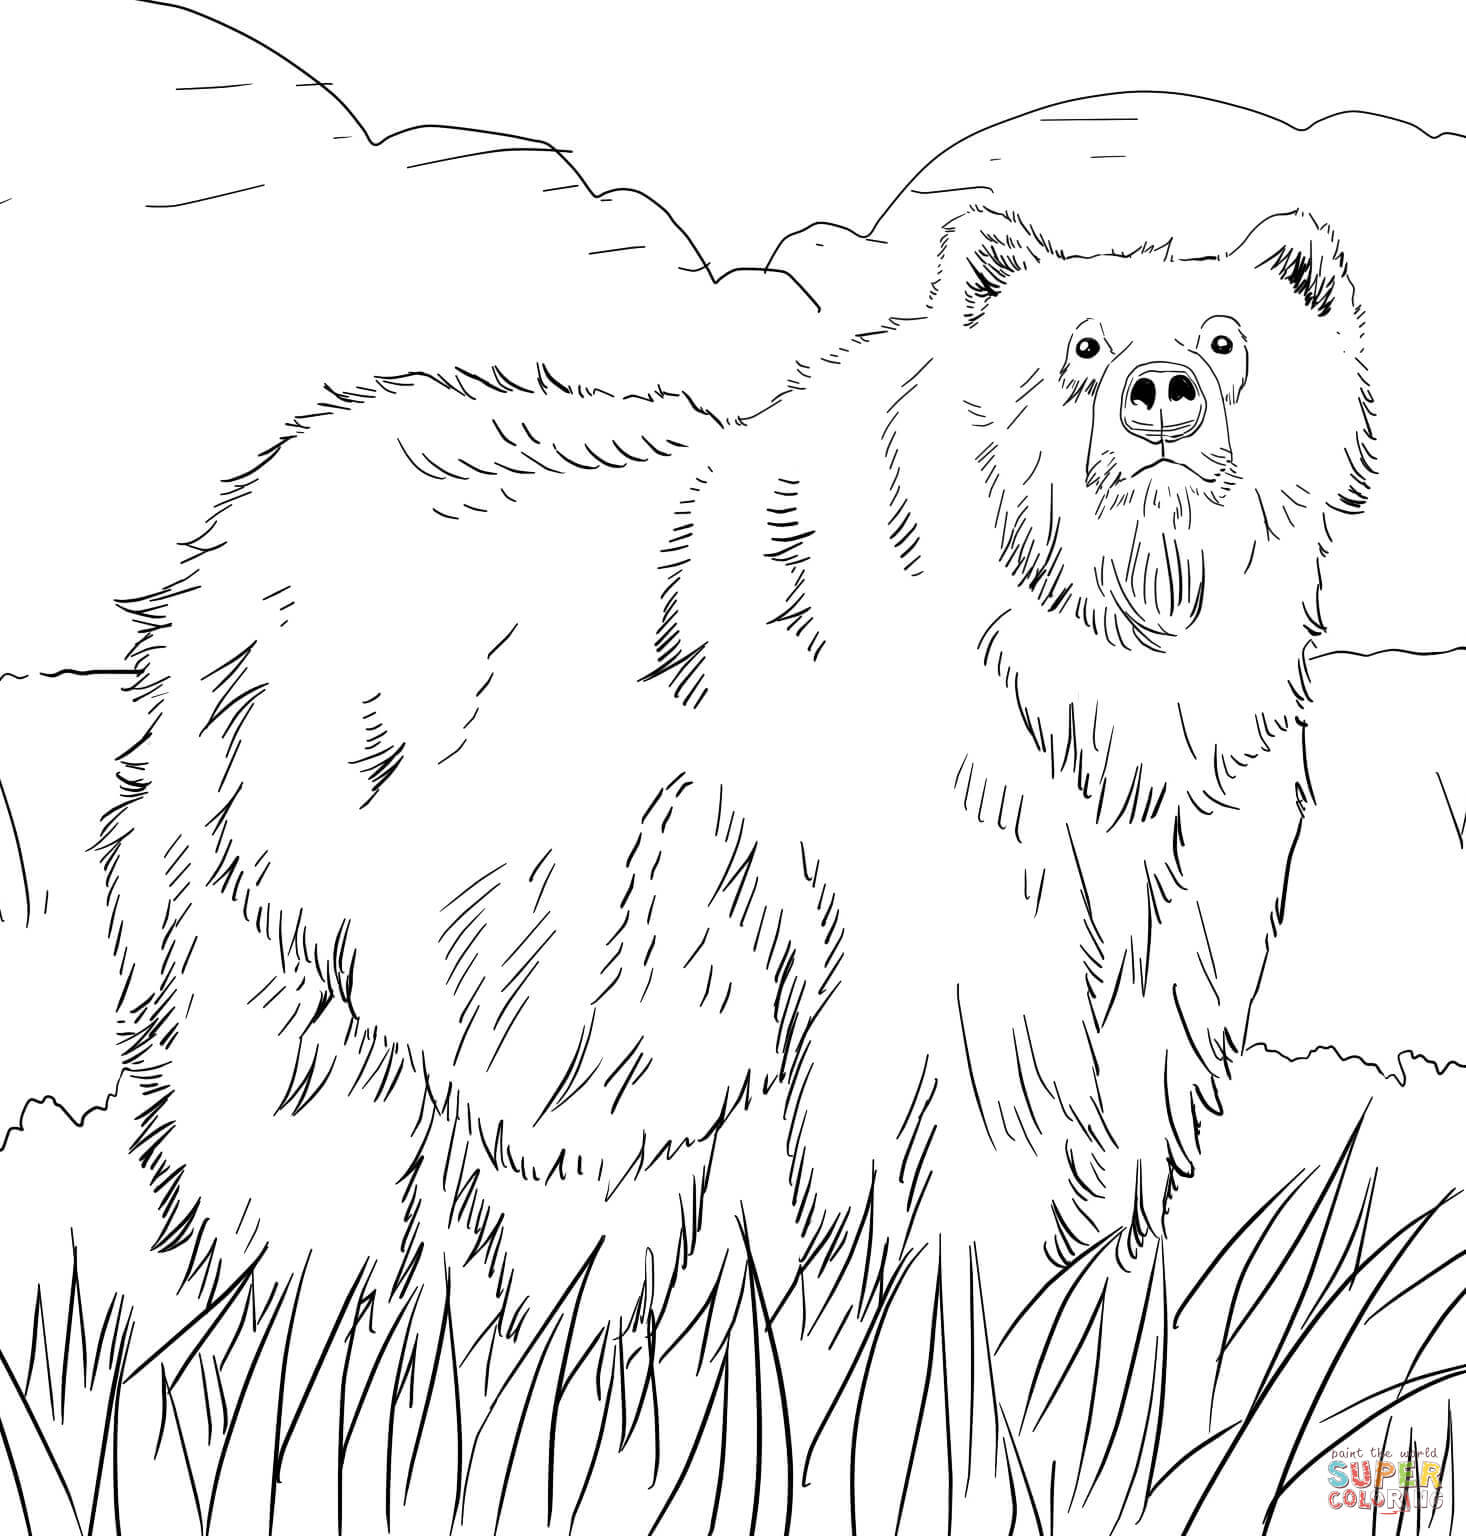 Bear Coloring Pages Alaskan Grizzly Bear Coloring Page Free Printable Coloring Pages